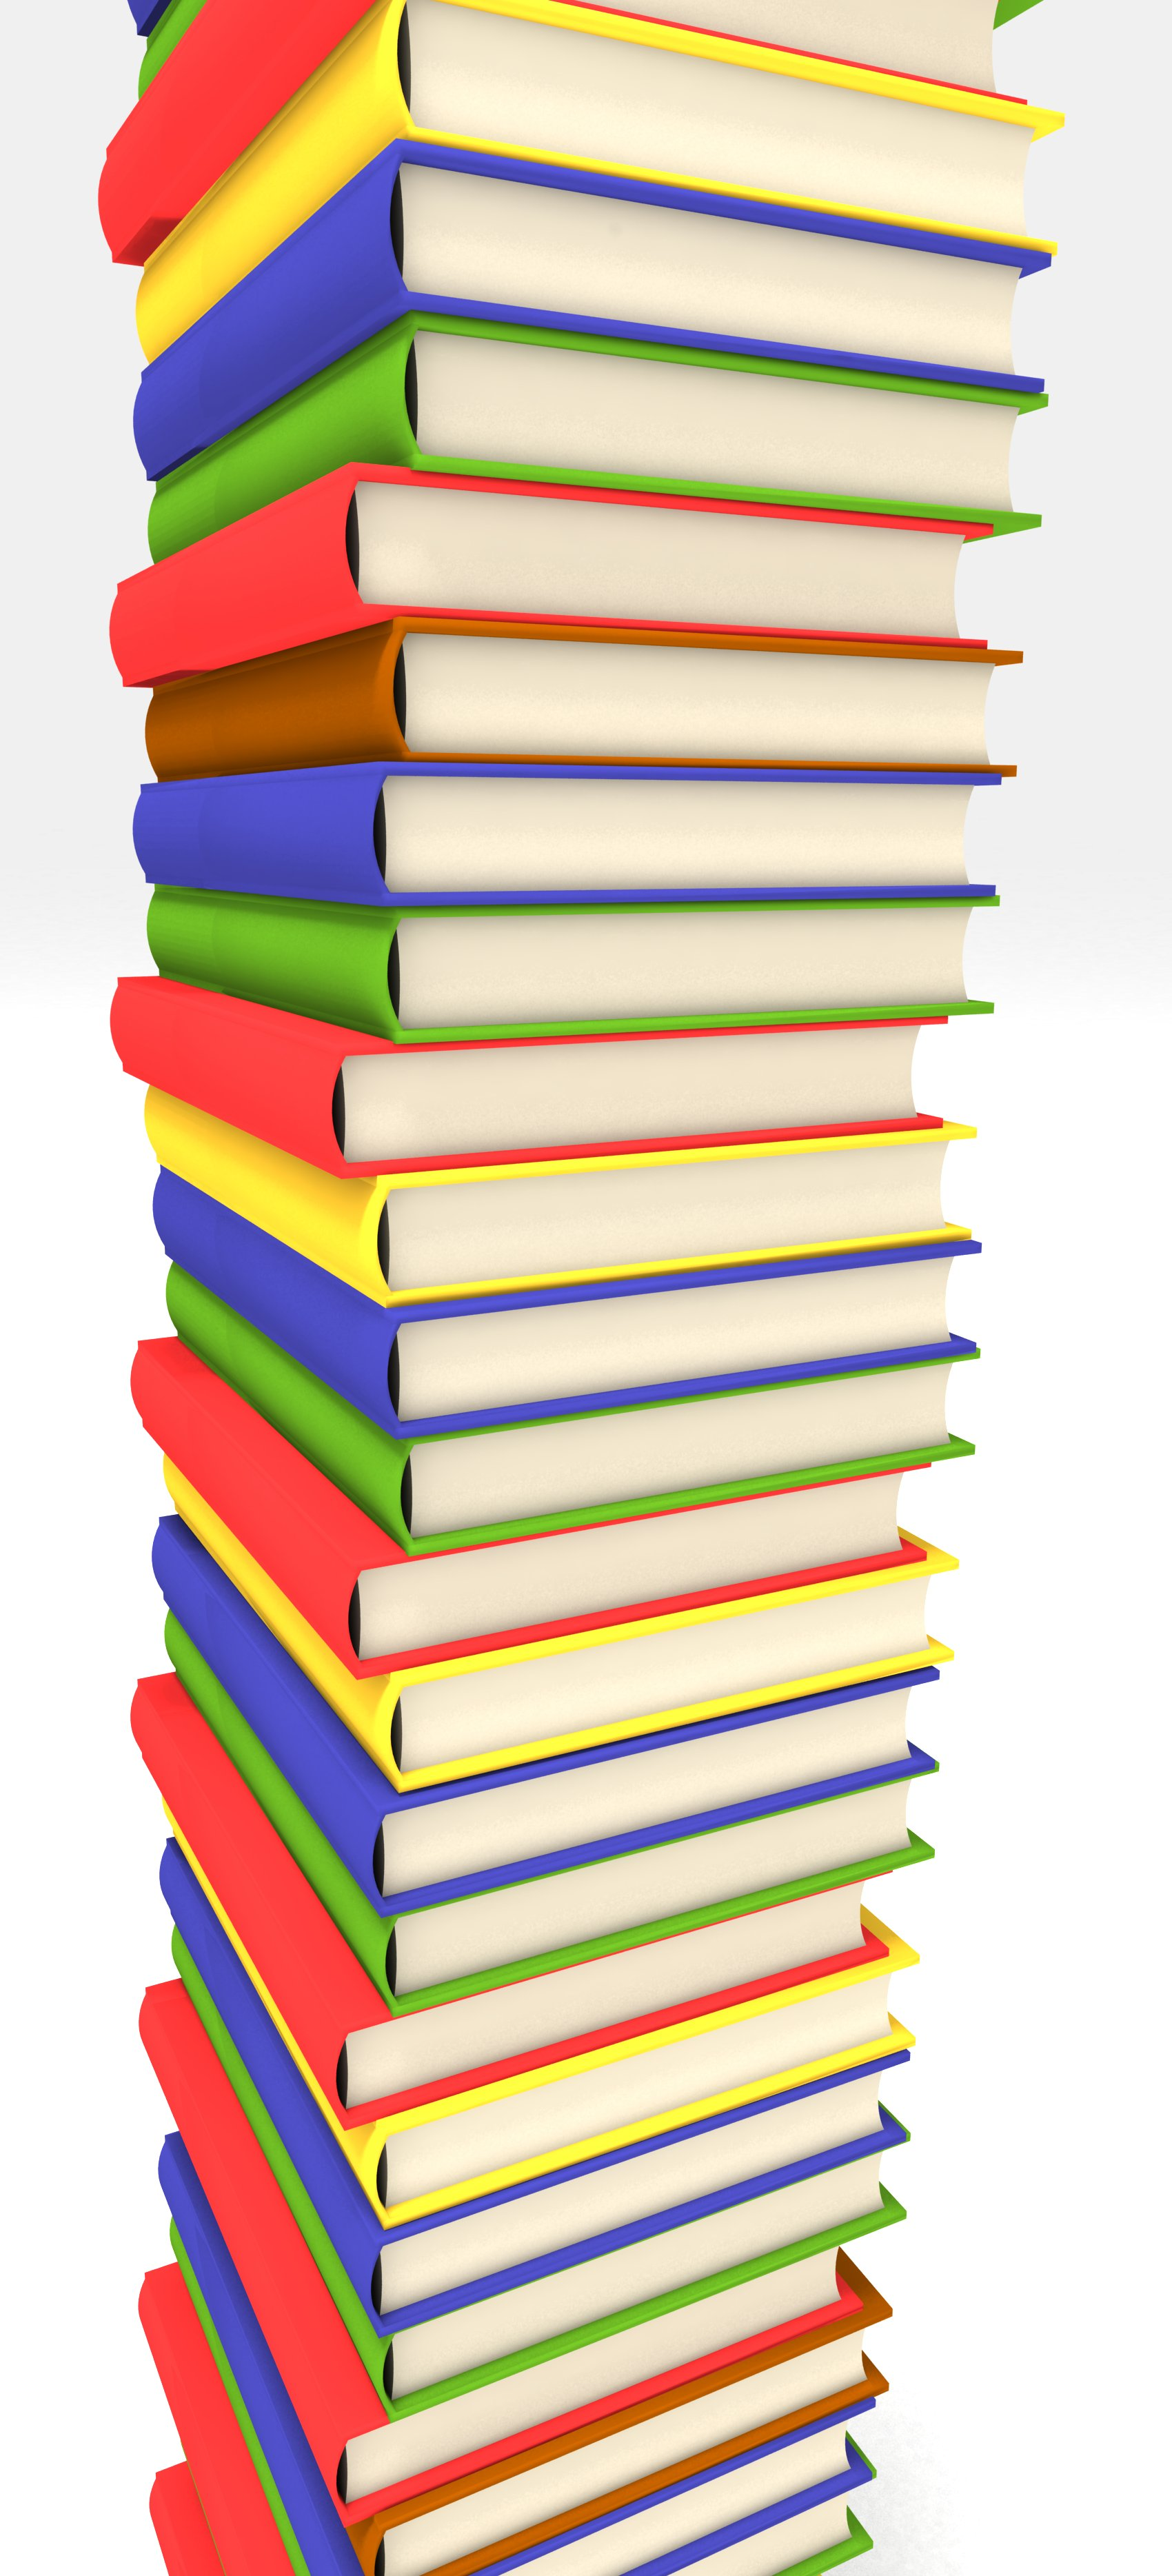 books pile apa guide visual xavier word writing research university favorite format children paper pillar iron gifted study should don